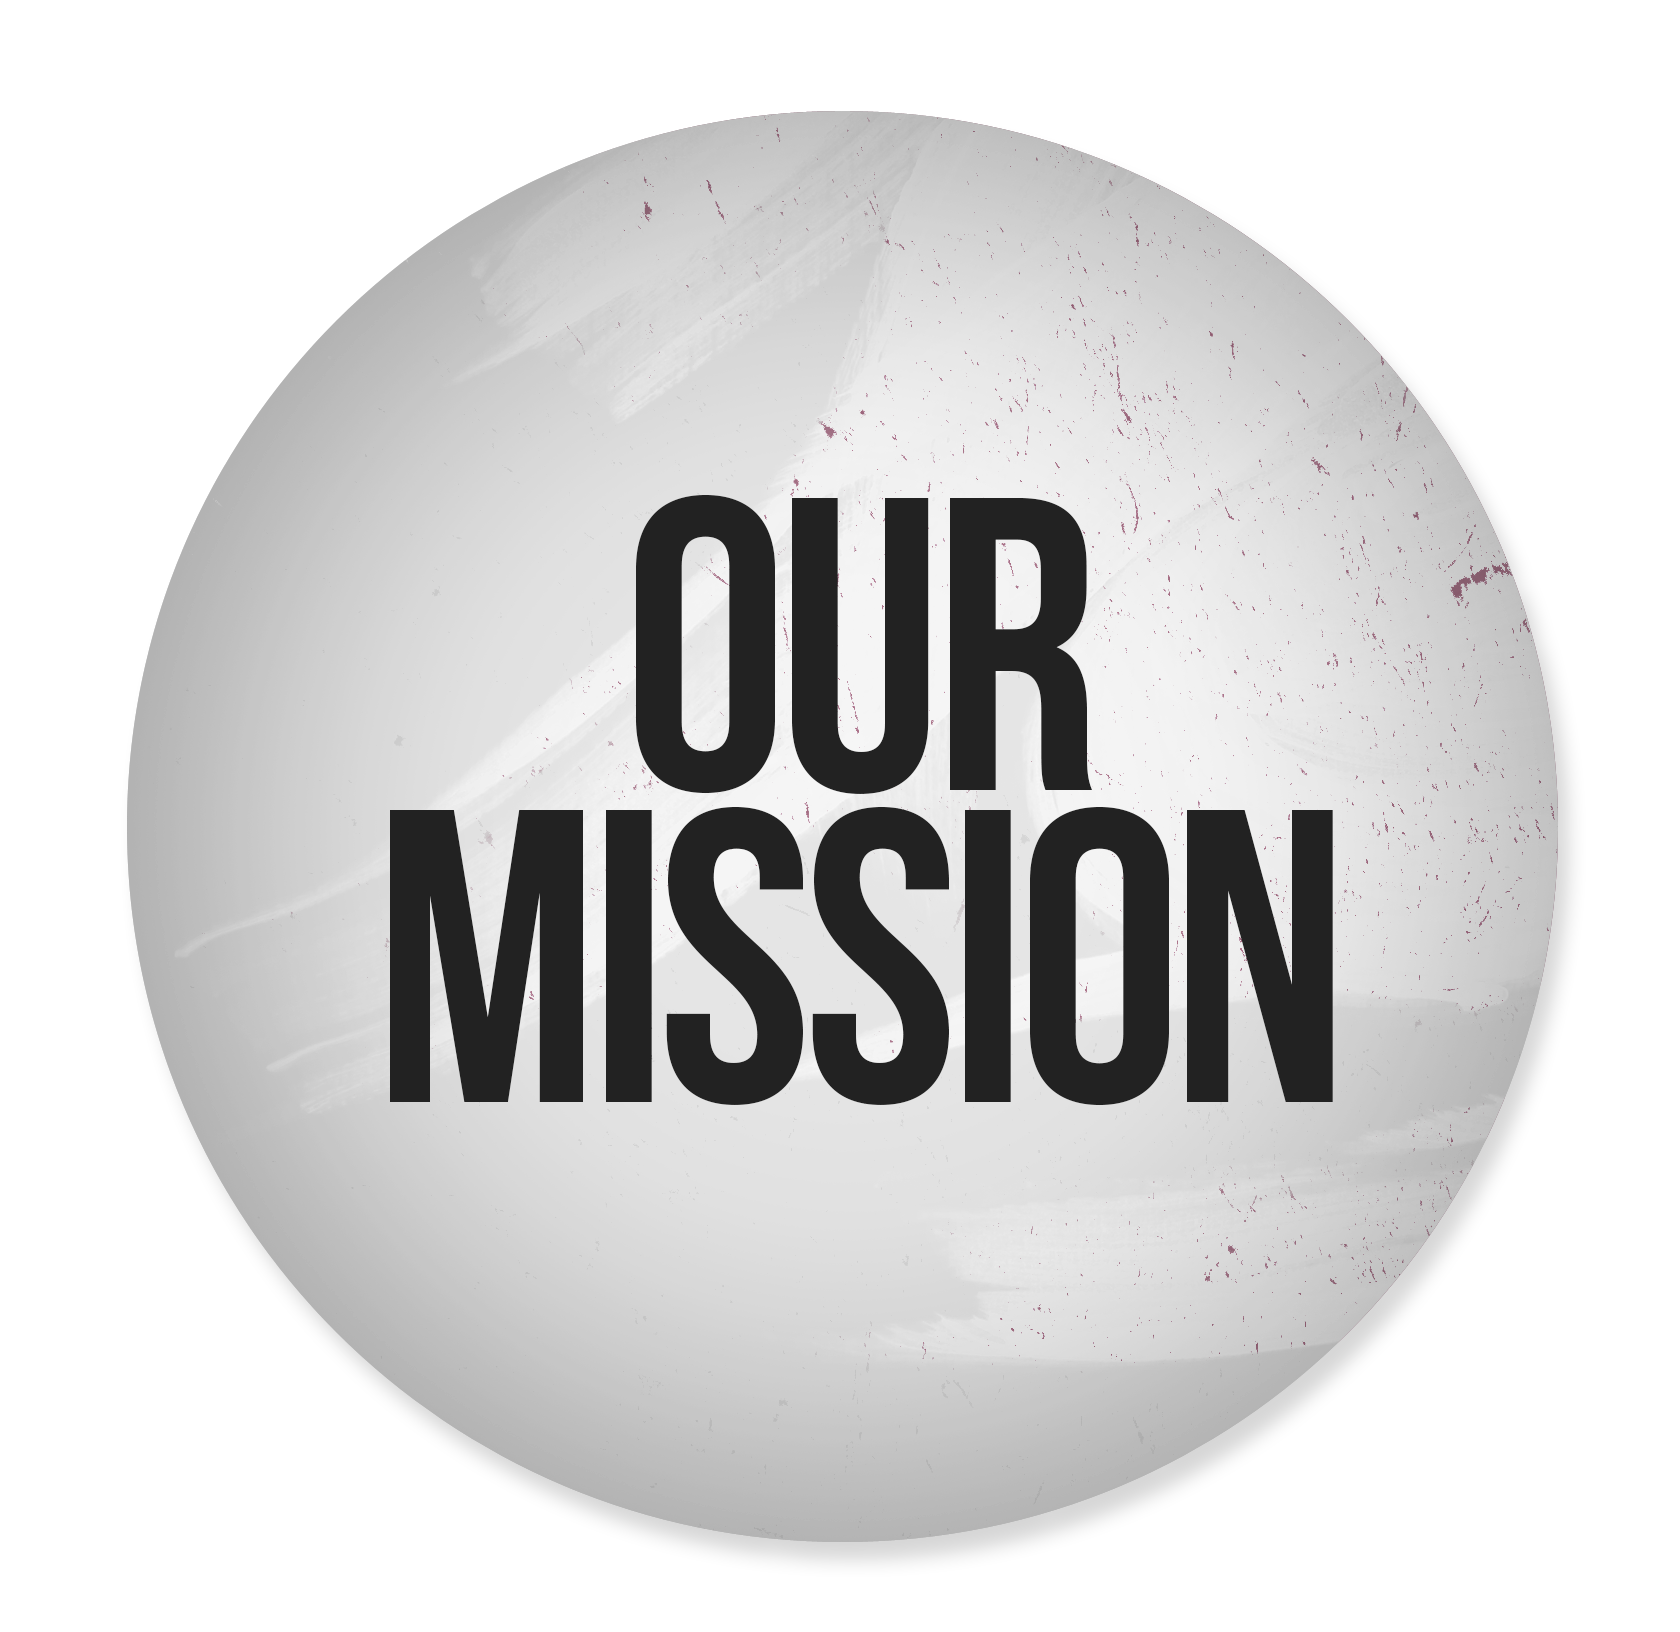 Vision statement png. Mission the jata group